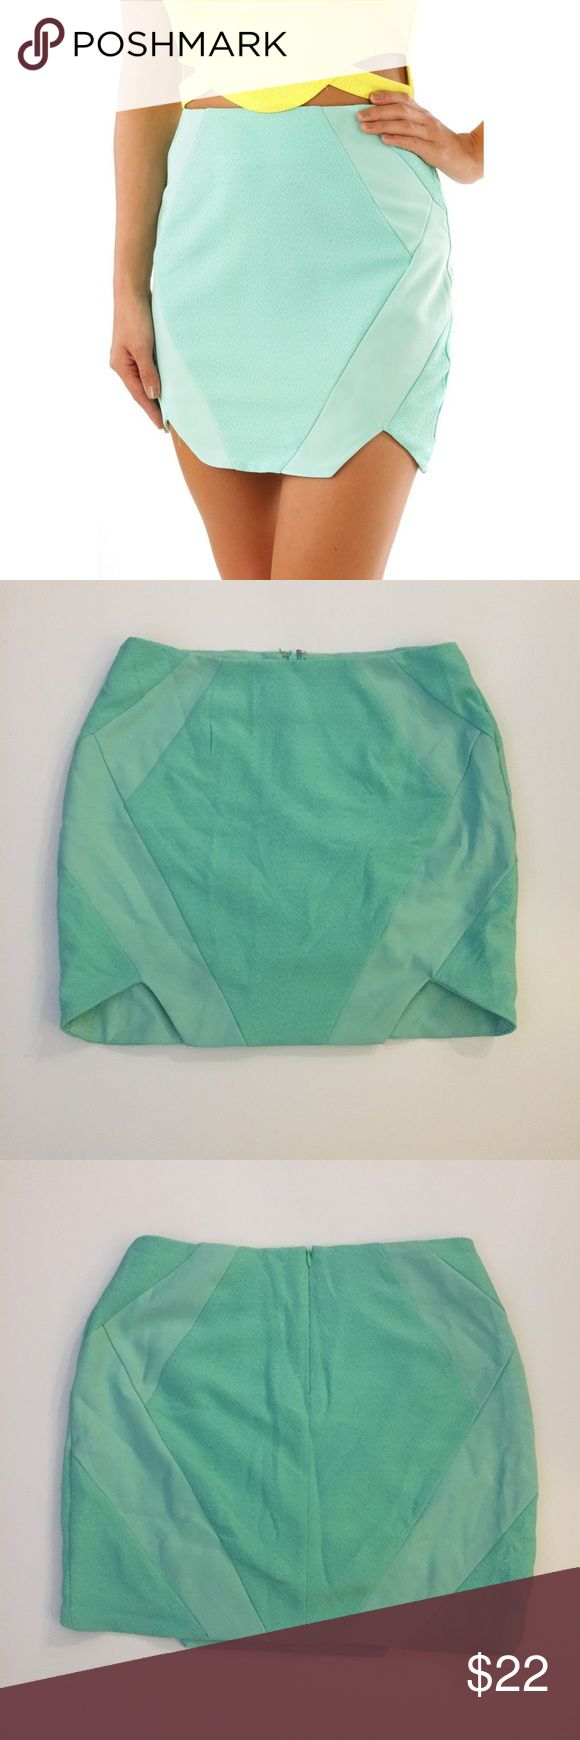 NWT mustard seed mint green skirt-S New with tags textured geometric mustard seed brand skirt.  Mint green color, size small. Tags: nastygal, missguided, tobi, lulu's, topshop, h and m, Zara **tagged as nasty gal for exposure** Nasty Gal Skirts Mini